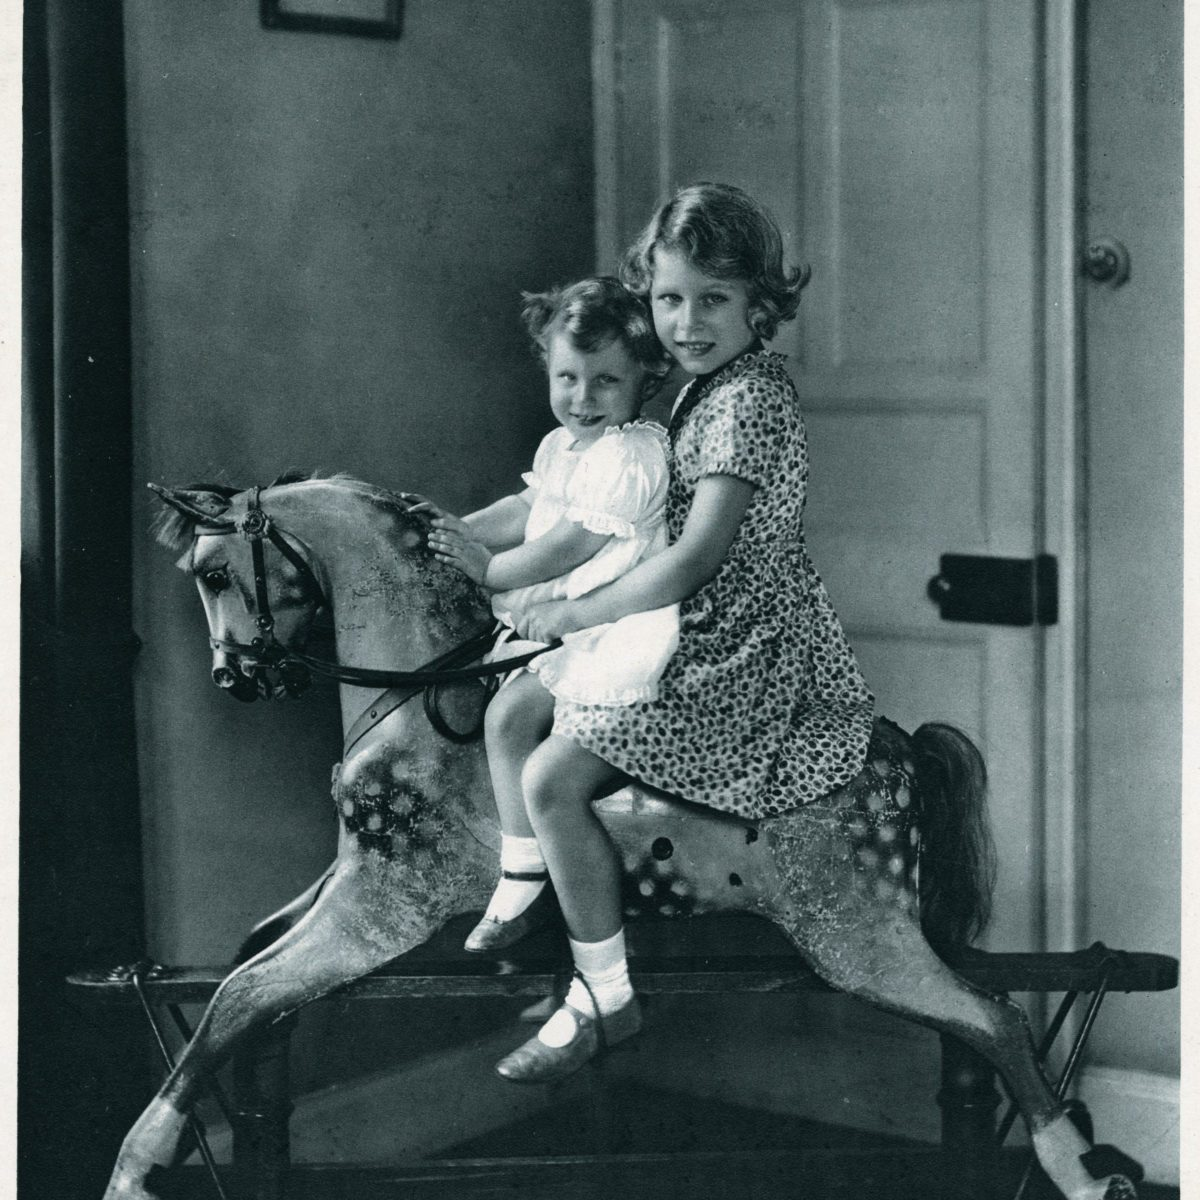 Rarely Seen Photos of the British Royal Family Through the Years | Reader's Digest